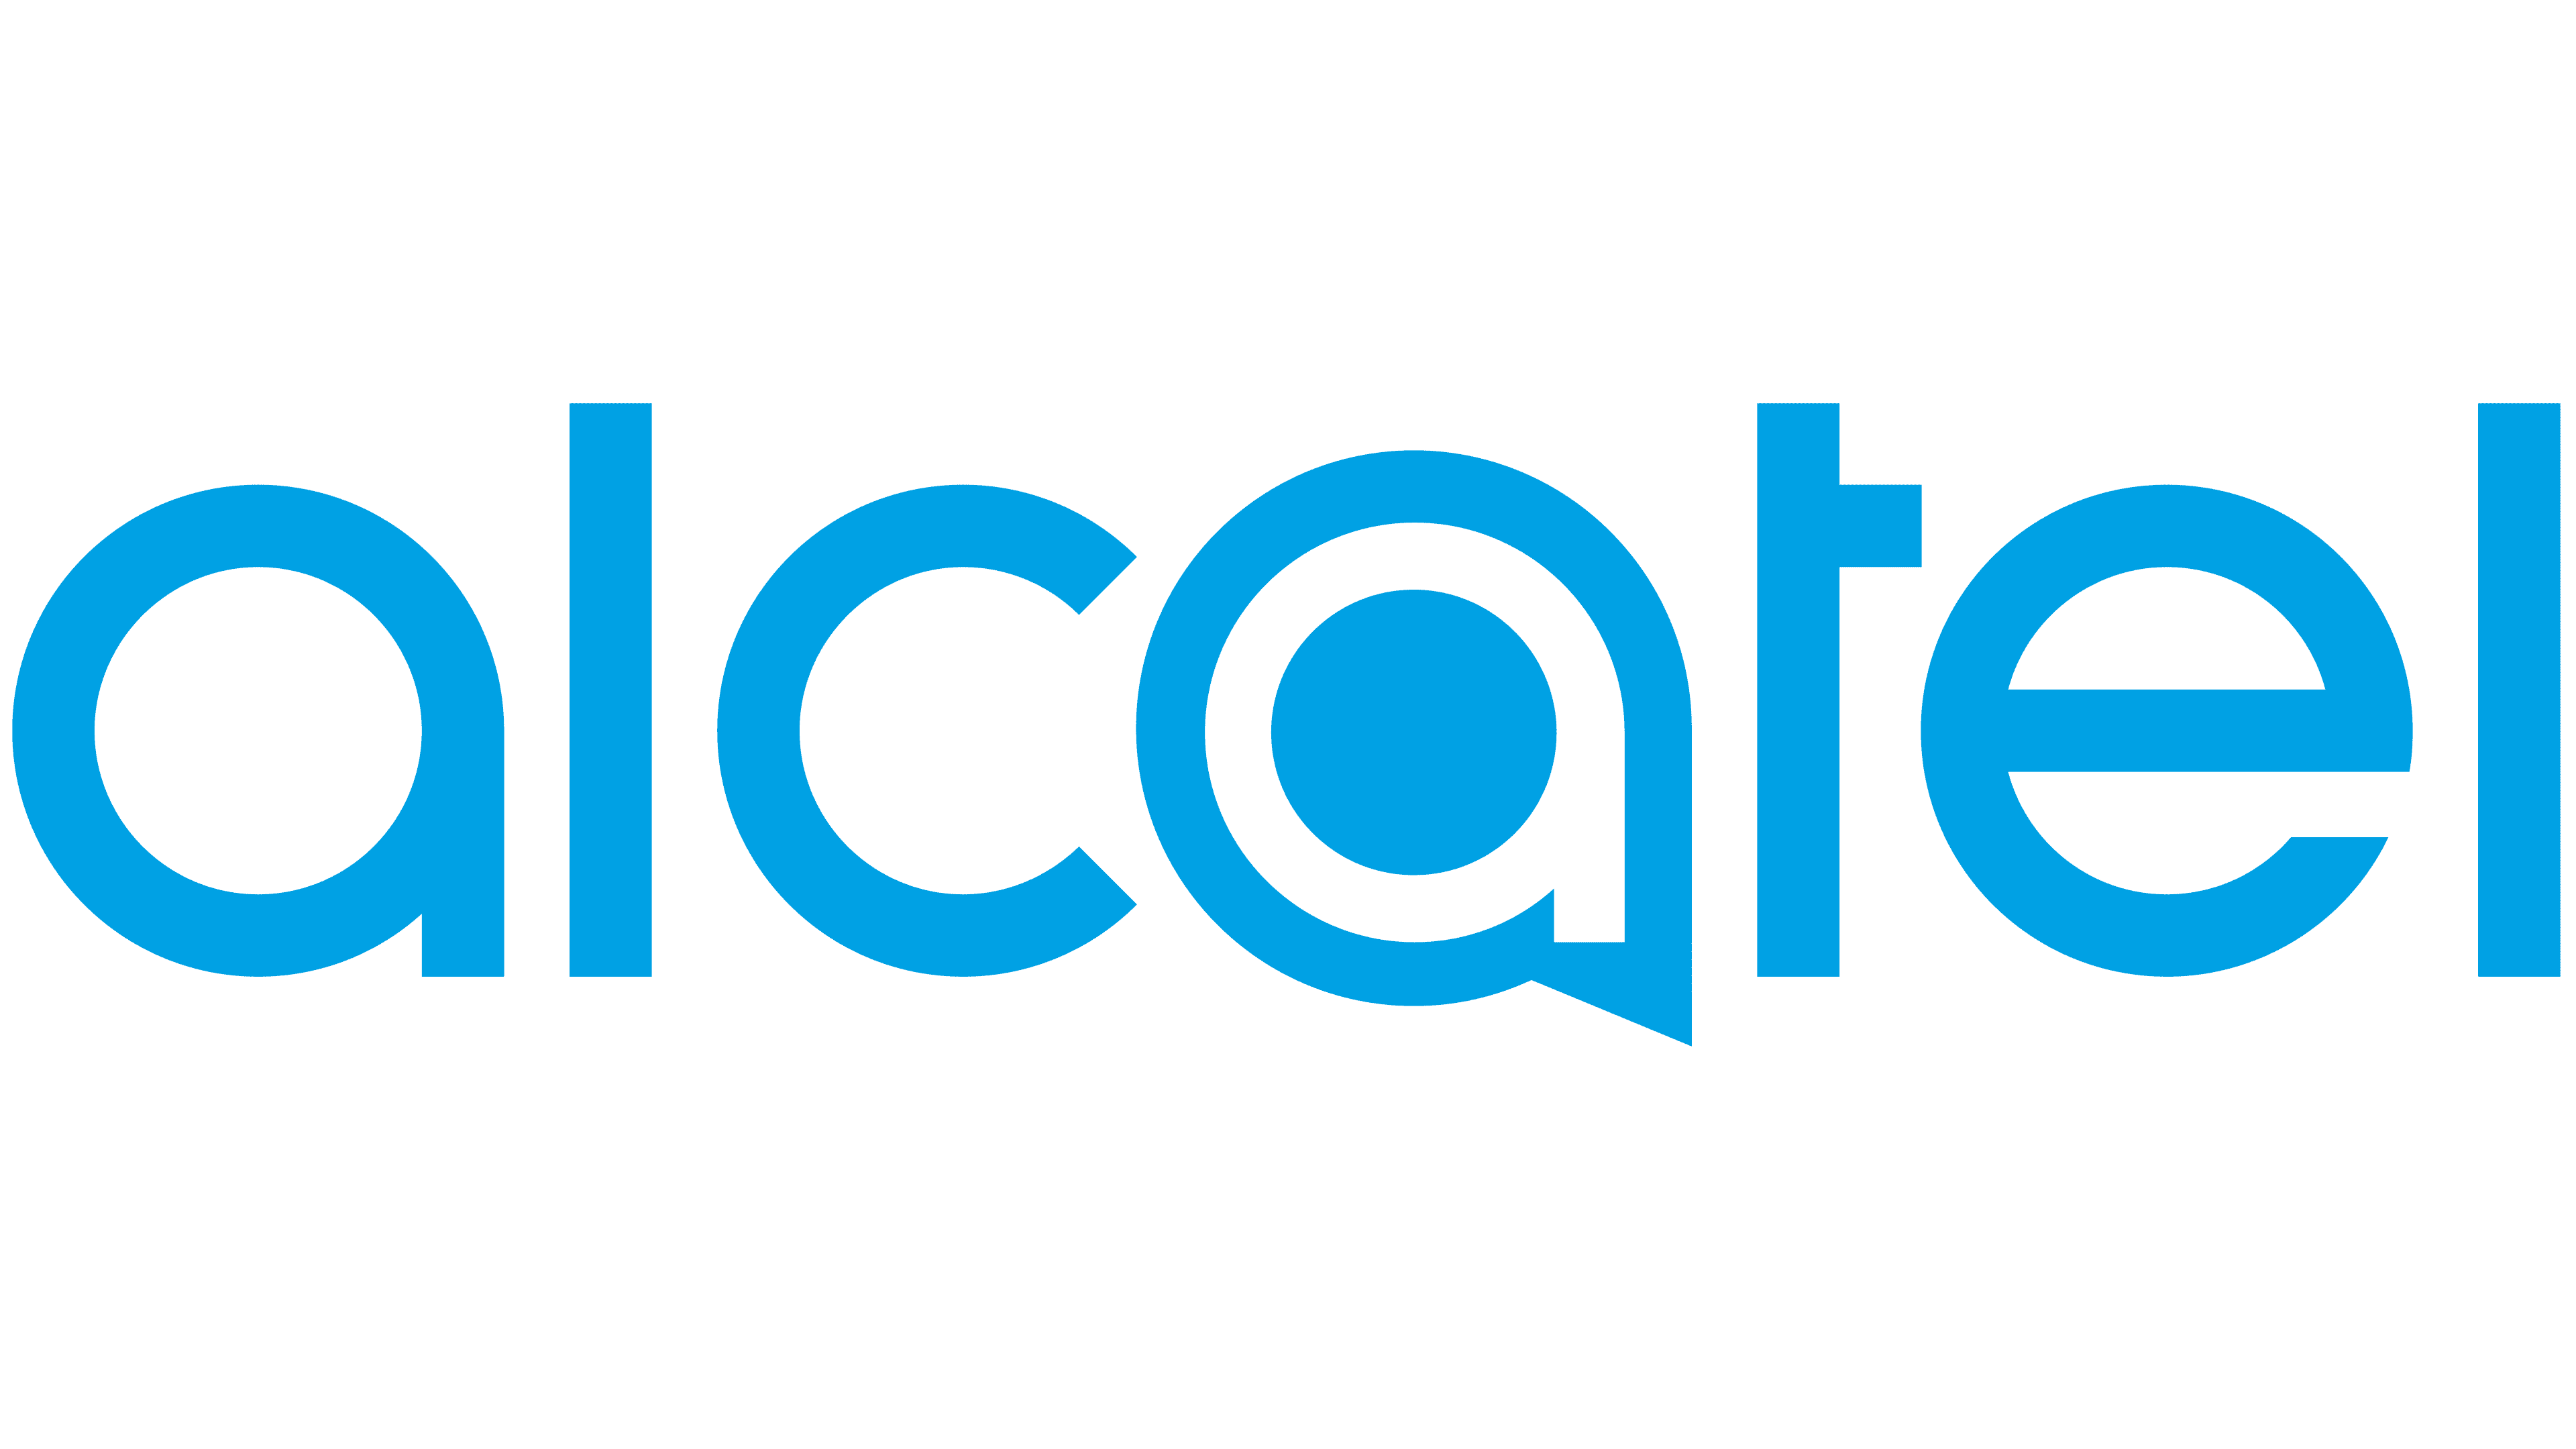 Alcatel Logo | The most famous brands and company logos in the world